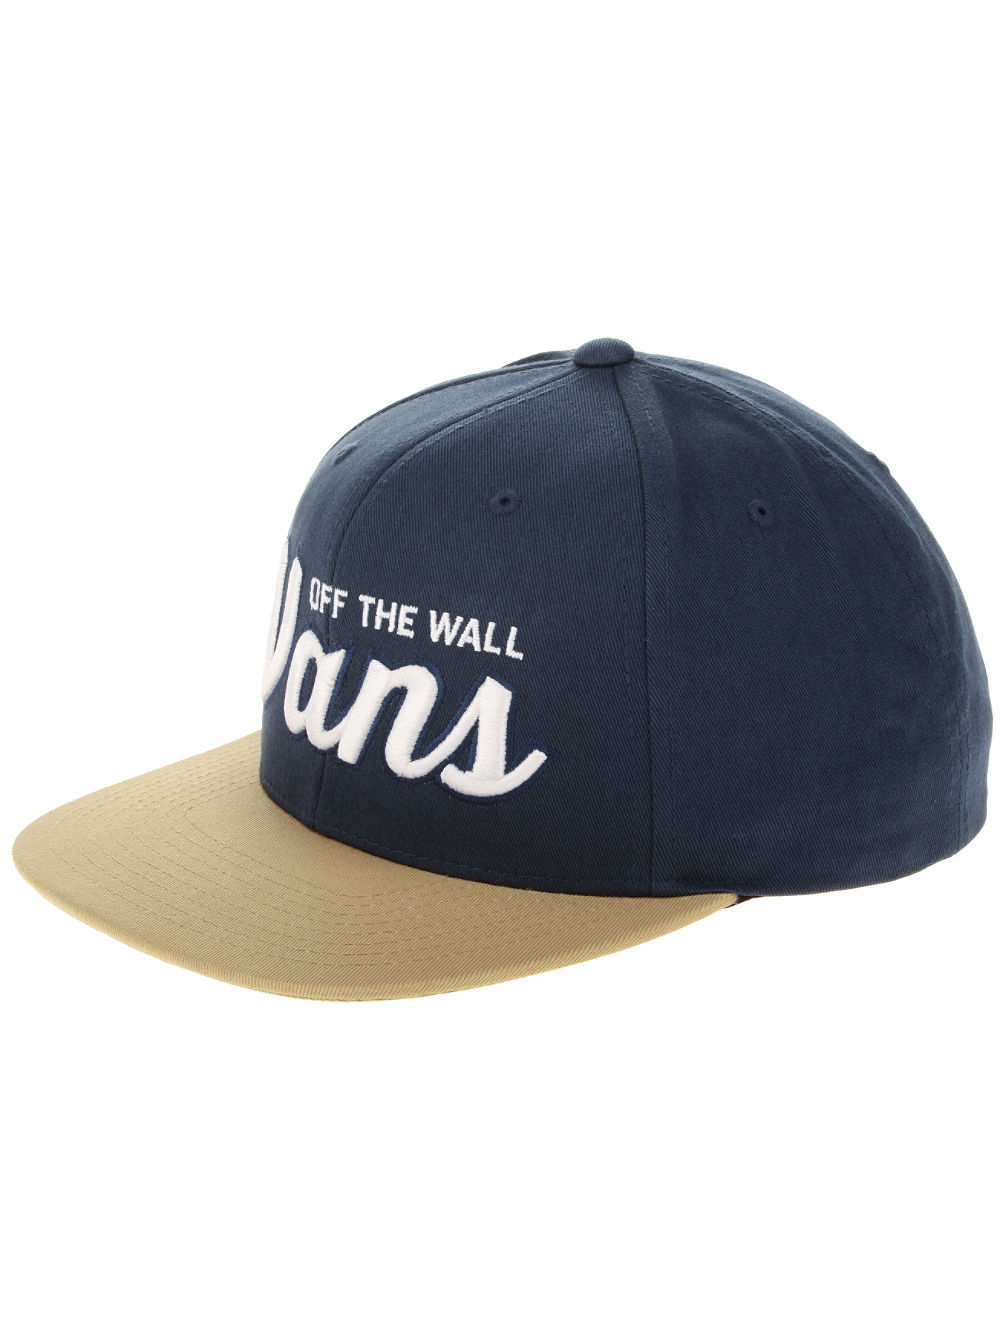 46c832edd4c ... Men Accessories Caps. Wilmington Snapback Cap. Vans